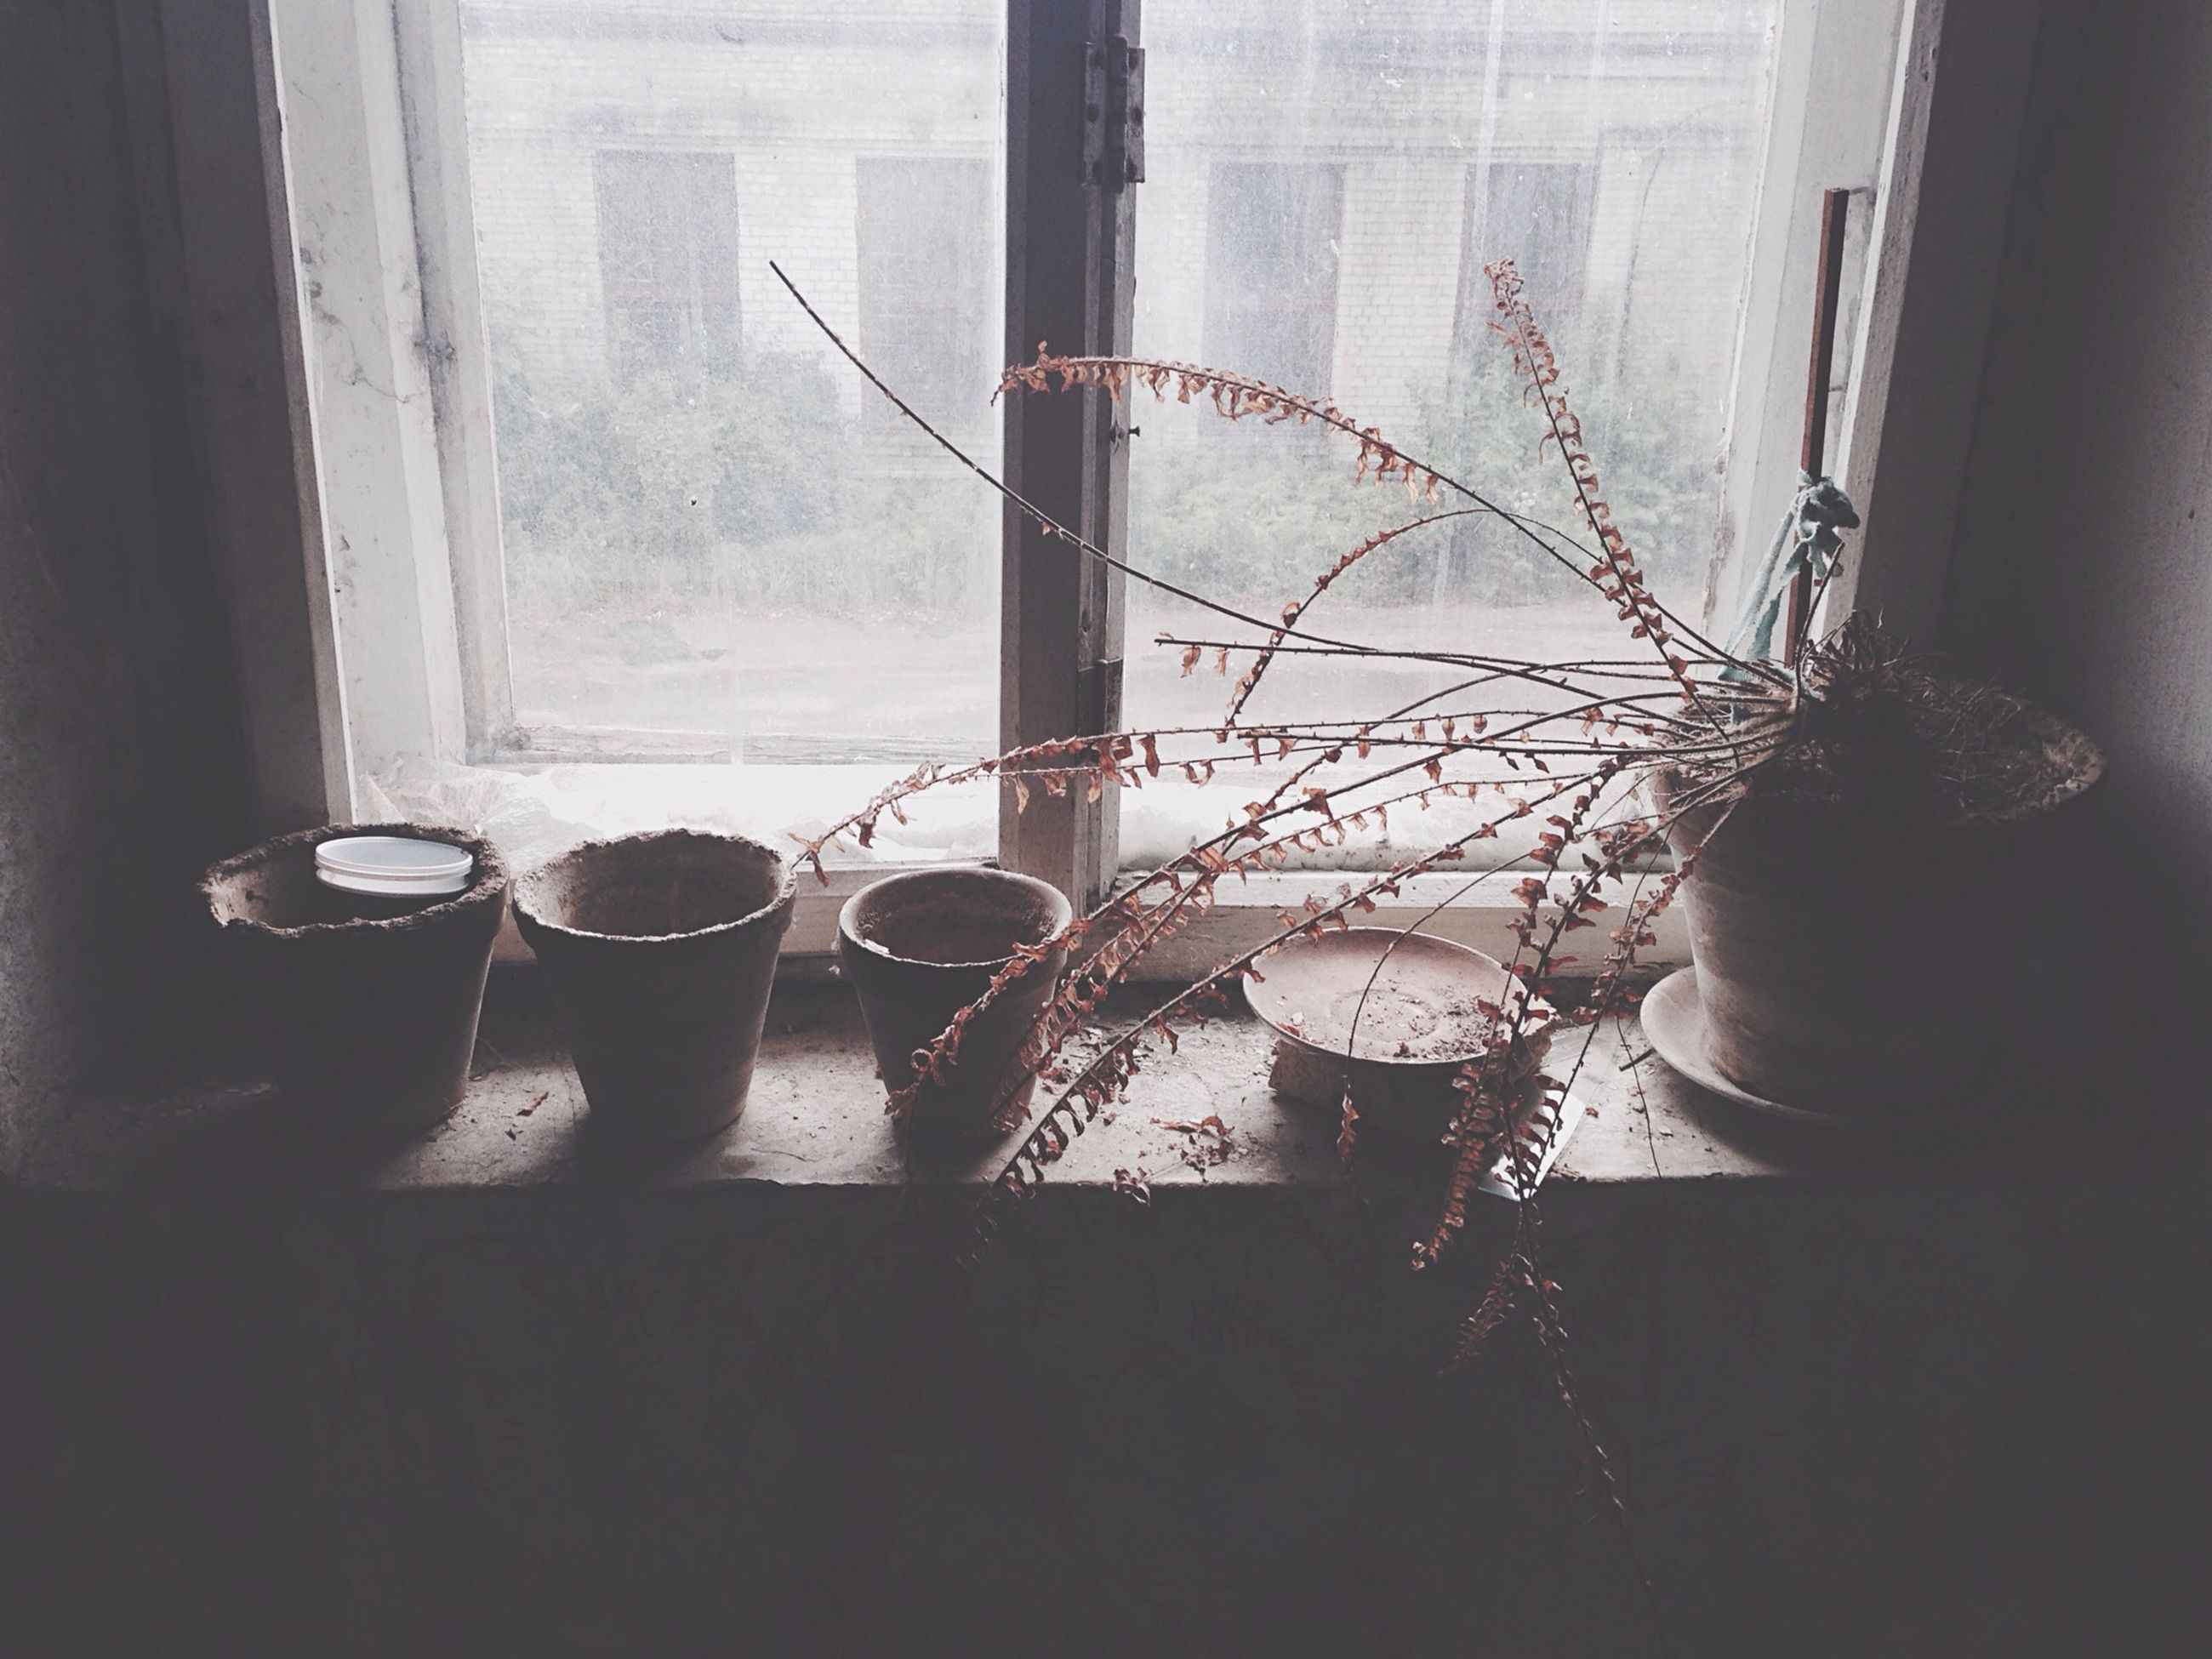 indoors, window, glass - material, home interior, curtain, transparent, window sill, table, chair, house, built structure, architecture, potted plant, day, hanging, glass, reflection, looking through window, domestic room, no people